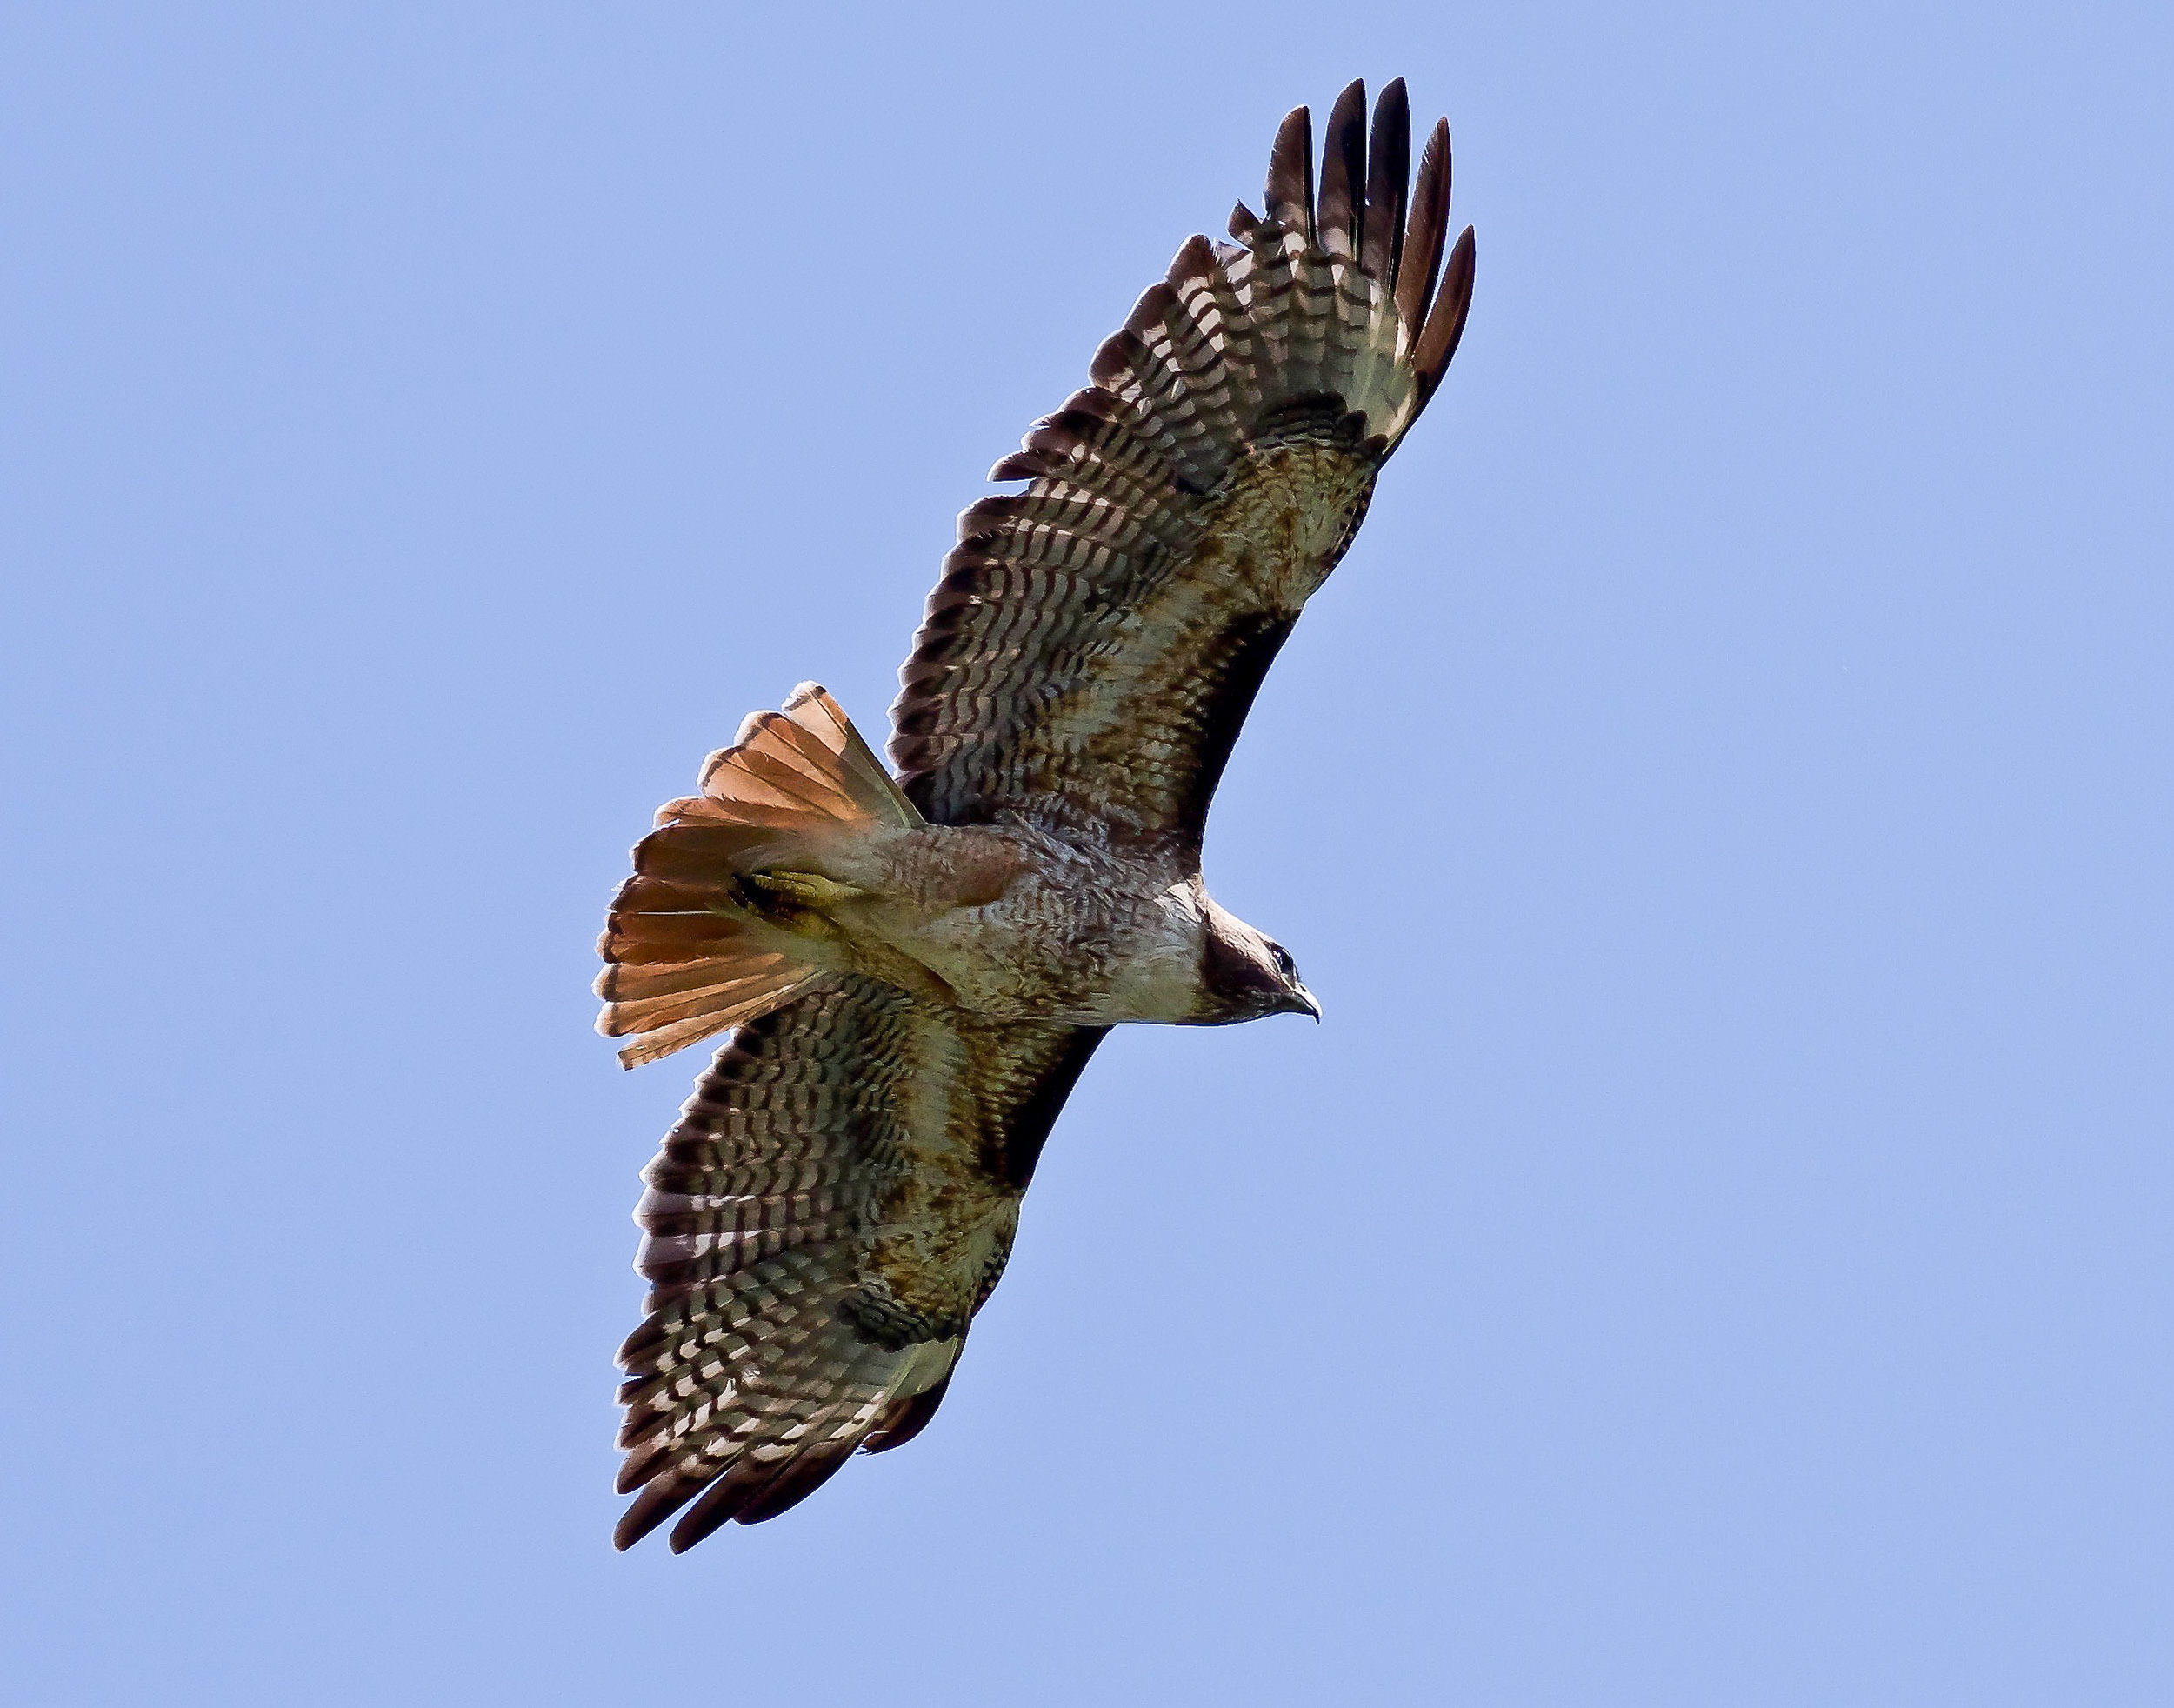 A red-tailed hawk in flight